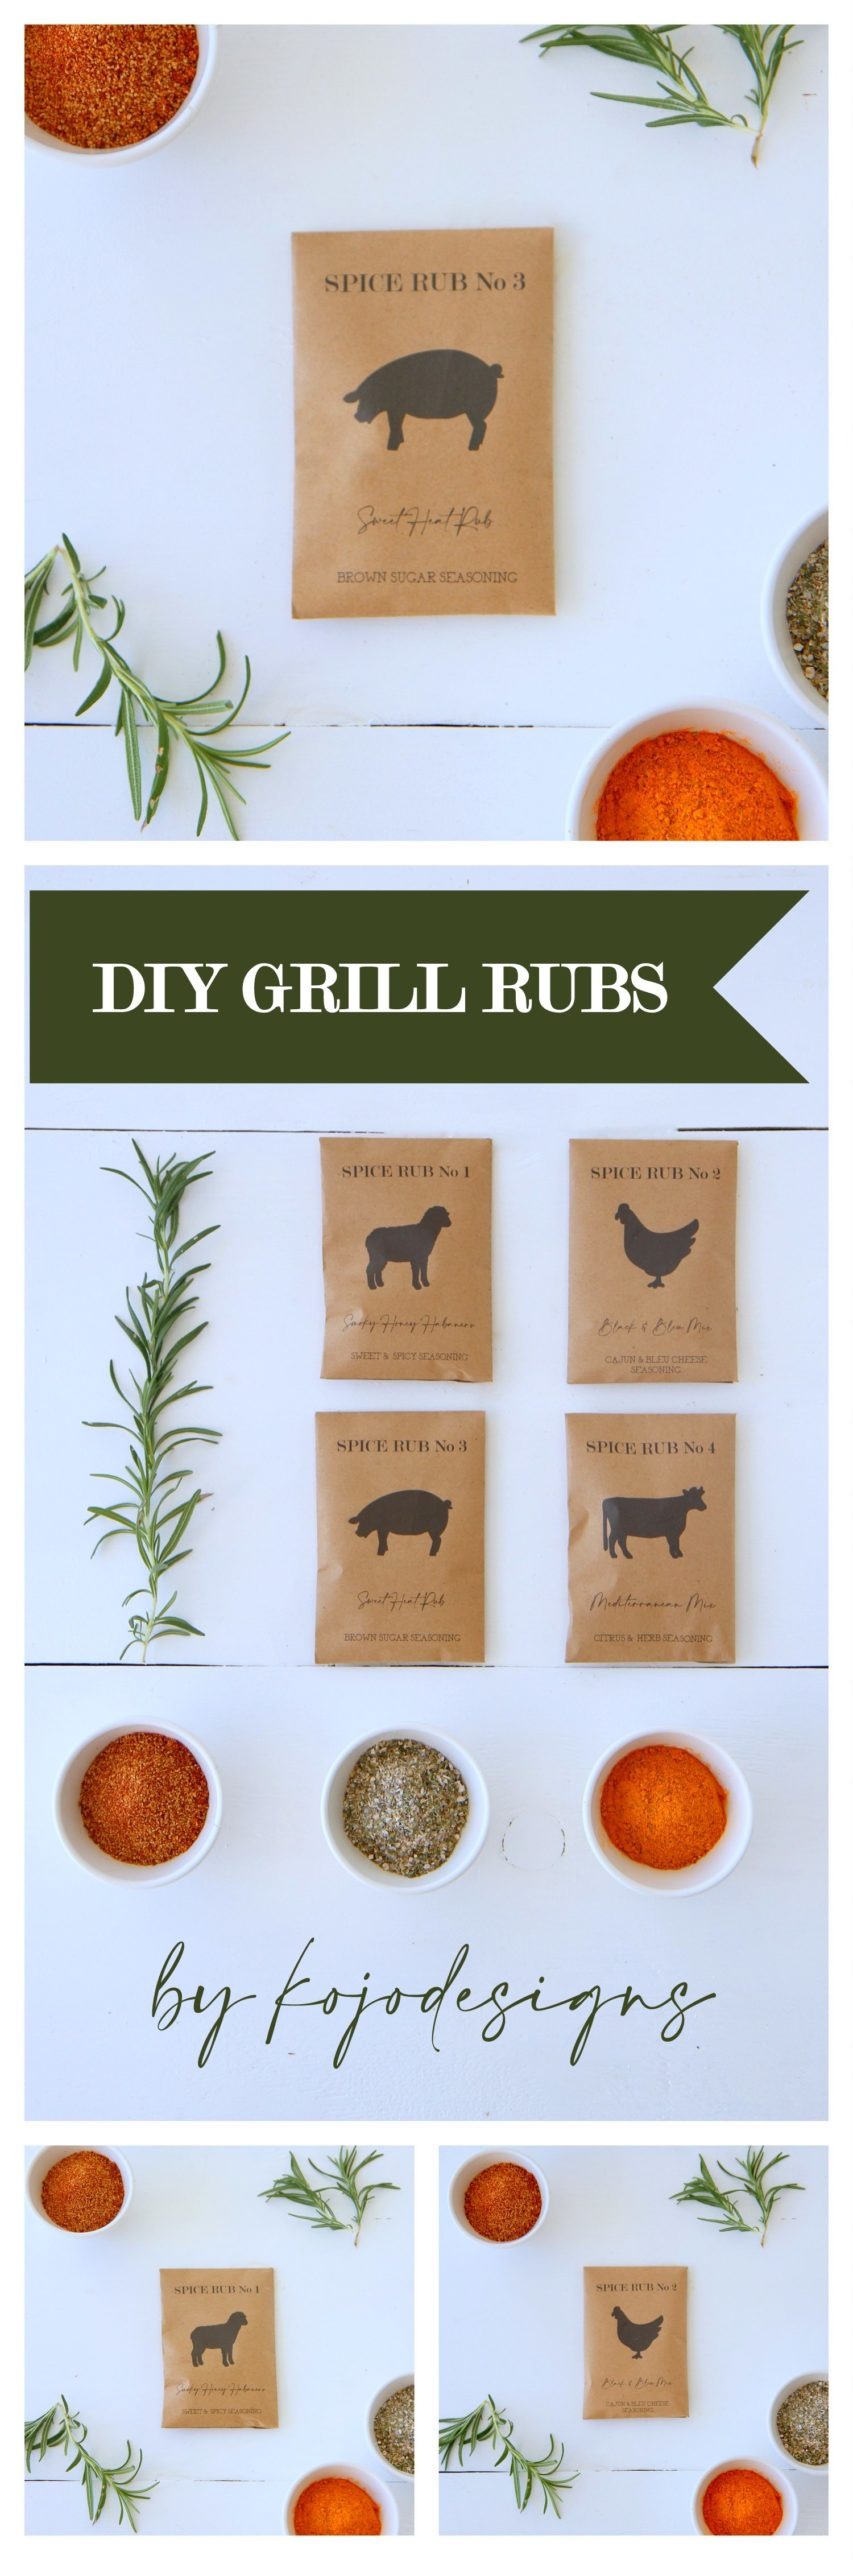 DIY grill rubs for Father's Day (with FREE printable)